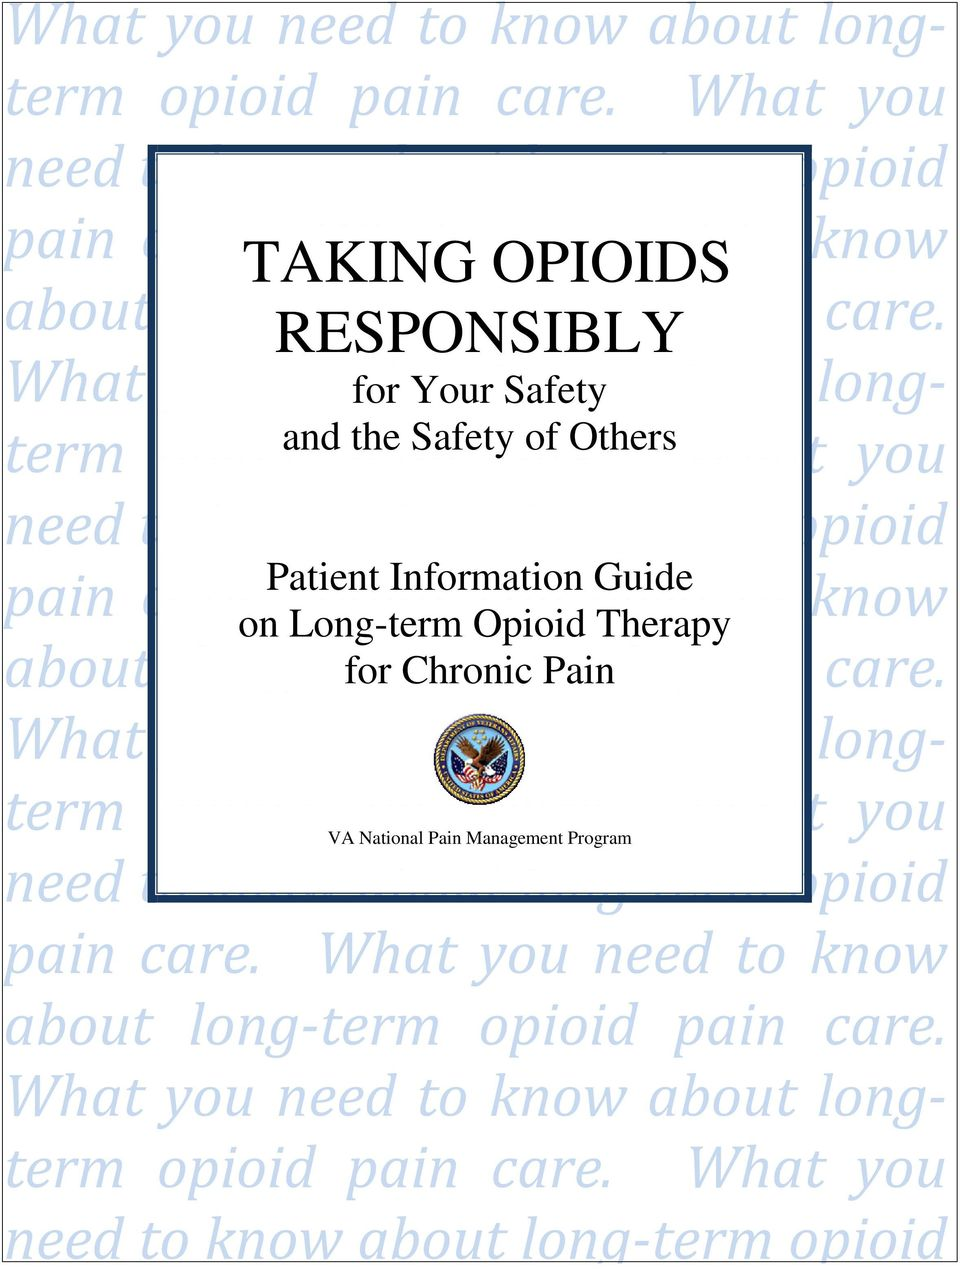 What you need to know about long-term opioid Patient Information Guide on Long-term Opioid Therapy pain care. What you need to know about long-term for Chronic opioid Pain pain care.